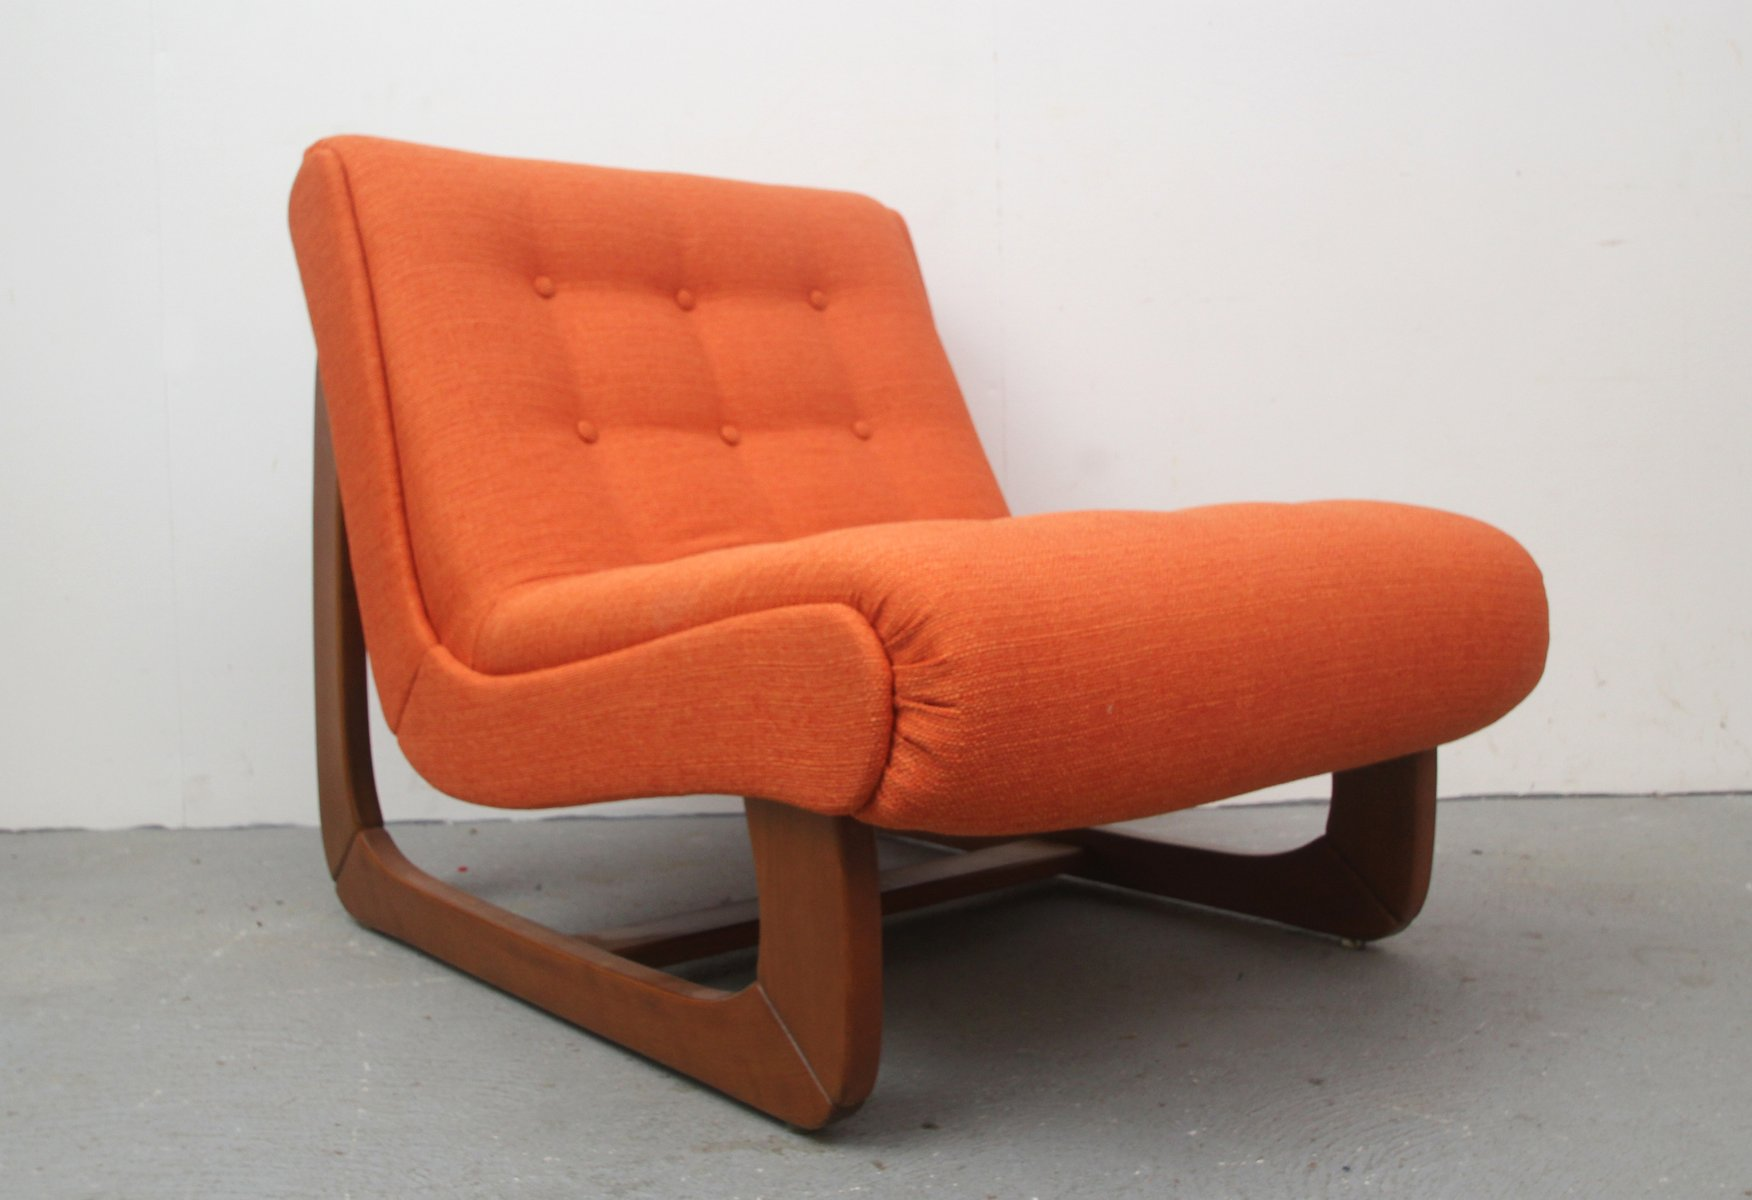 Vintage German Orange Lounge Chair for sale at Pamono